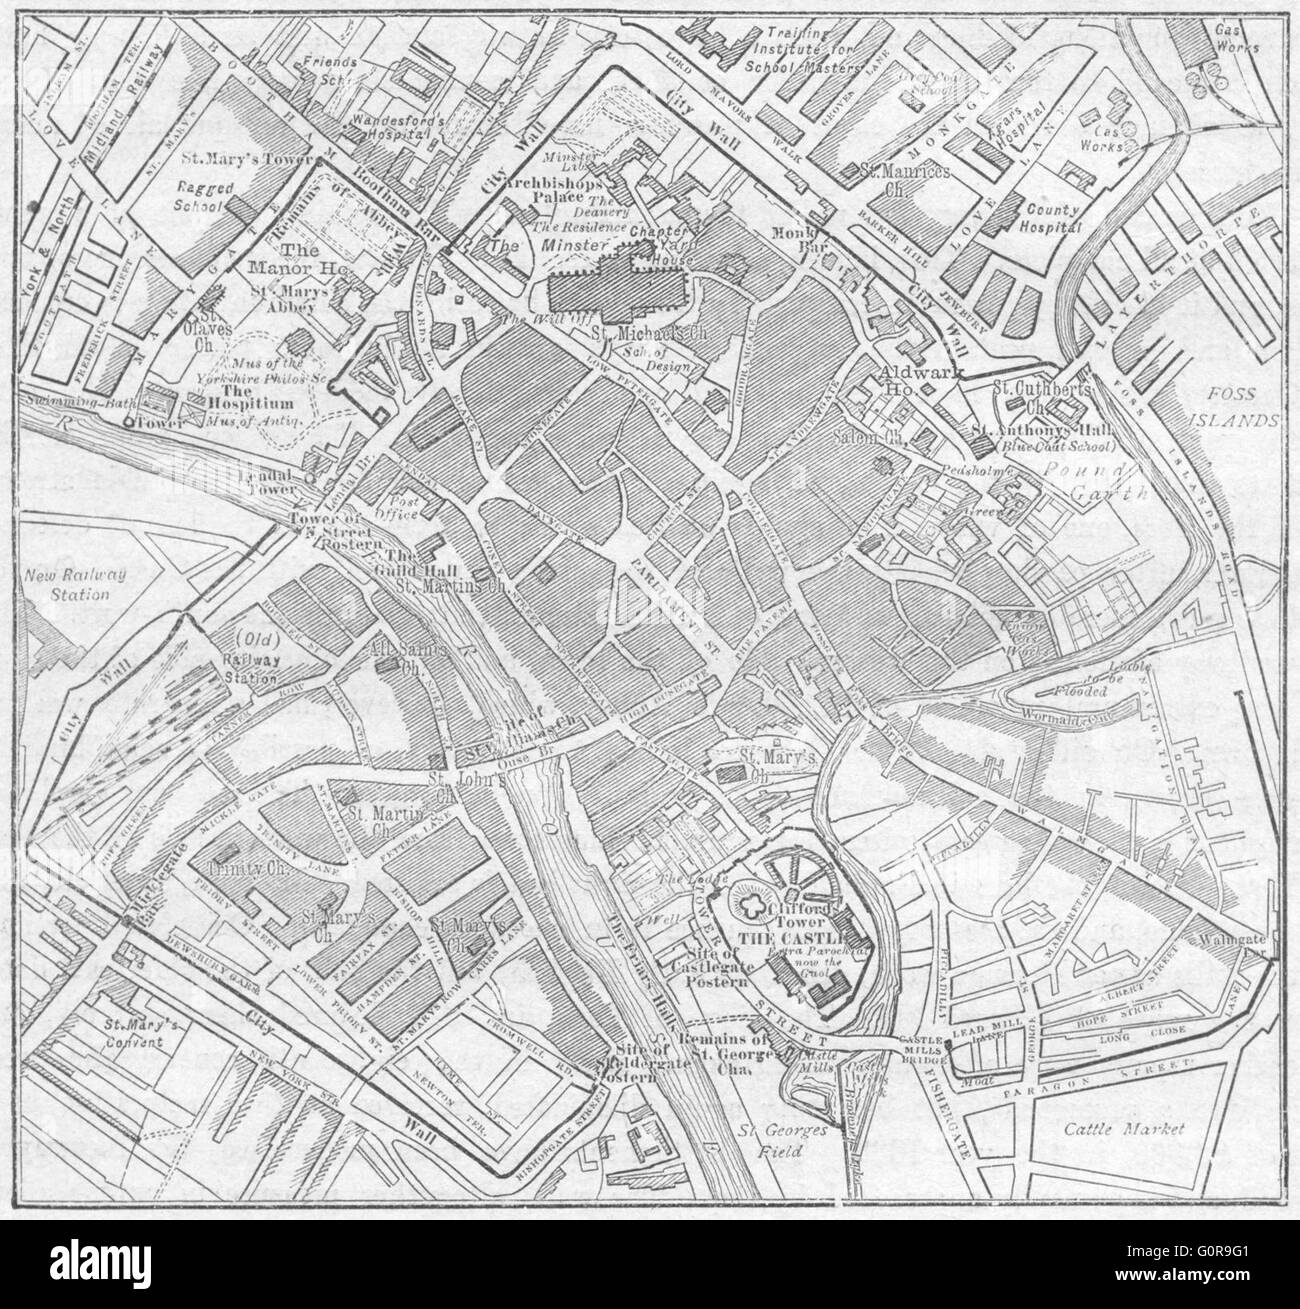 YORKS: York, sketch map, 1898 - Stock Image